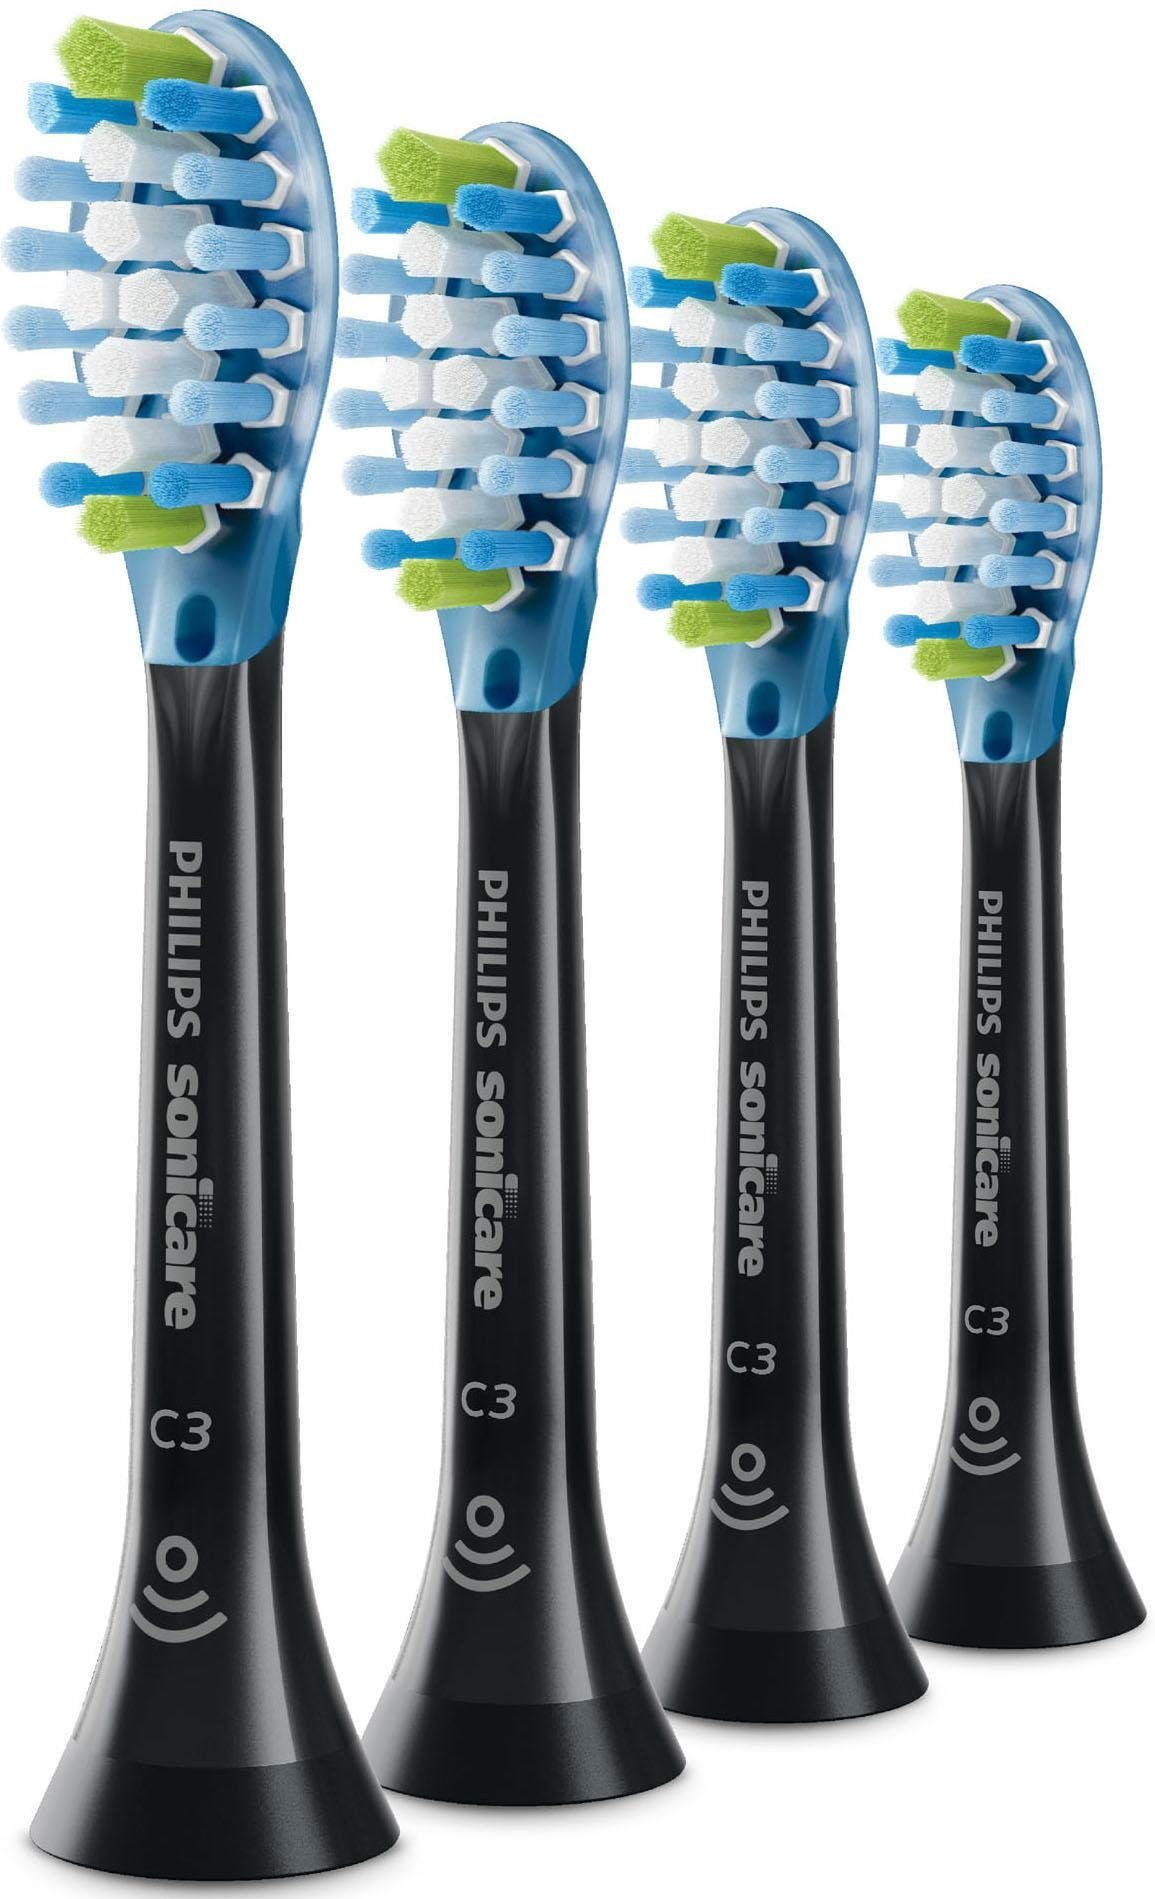 Philips Sonicare Ersatzbürsten für DiamondClean Smart HX9044/33, Premium Plaque Defense, 4er Pack, schwarz